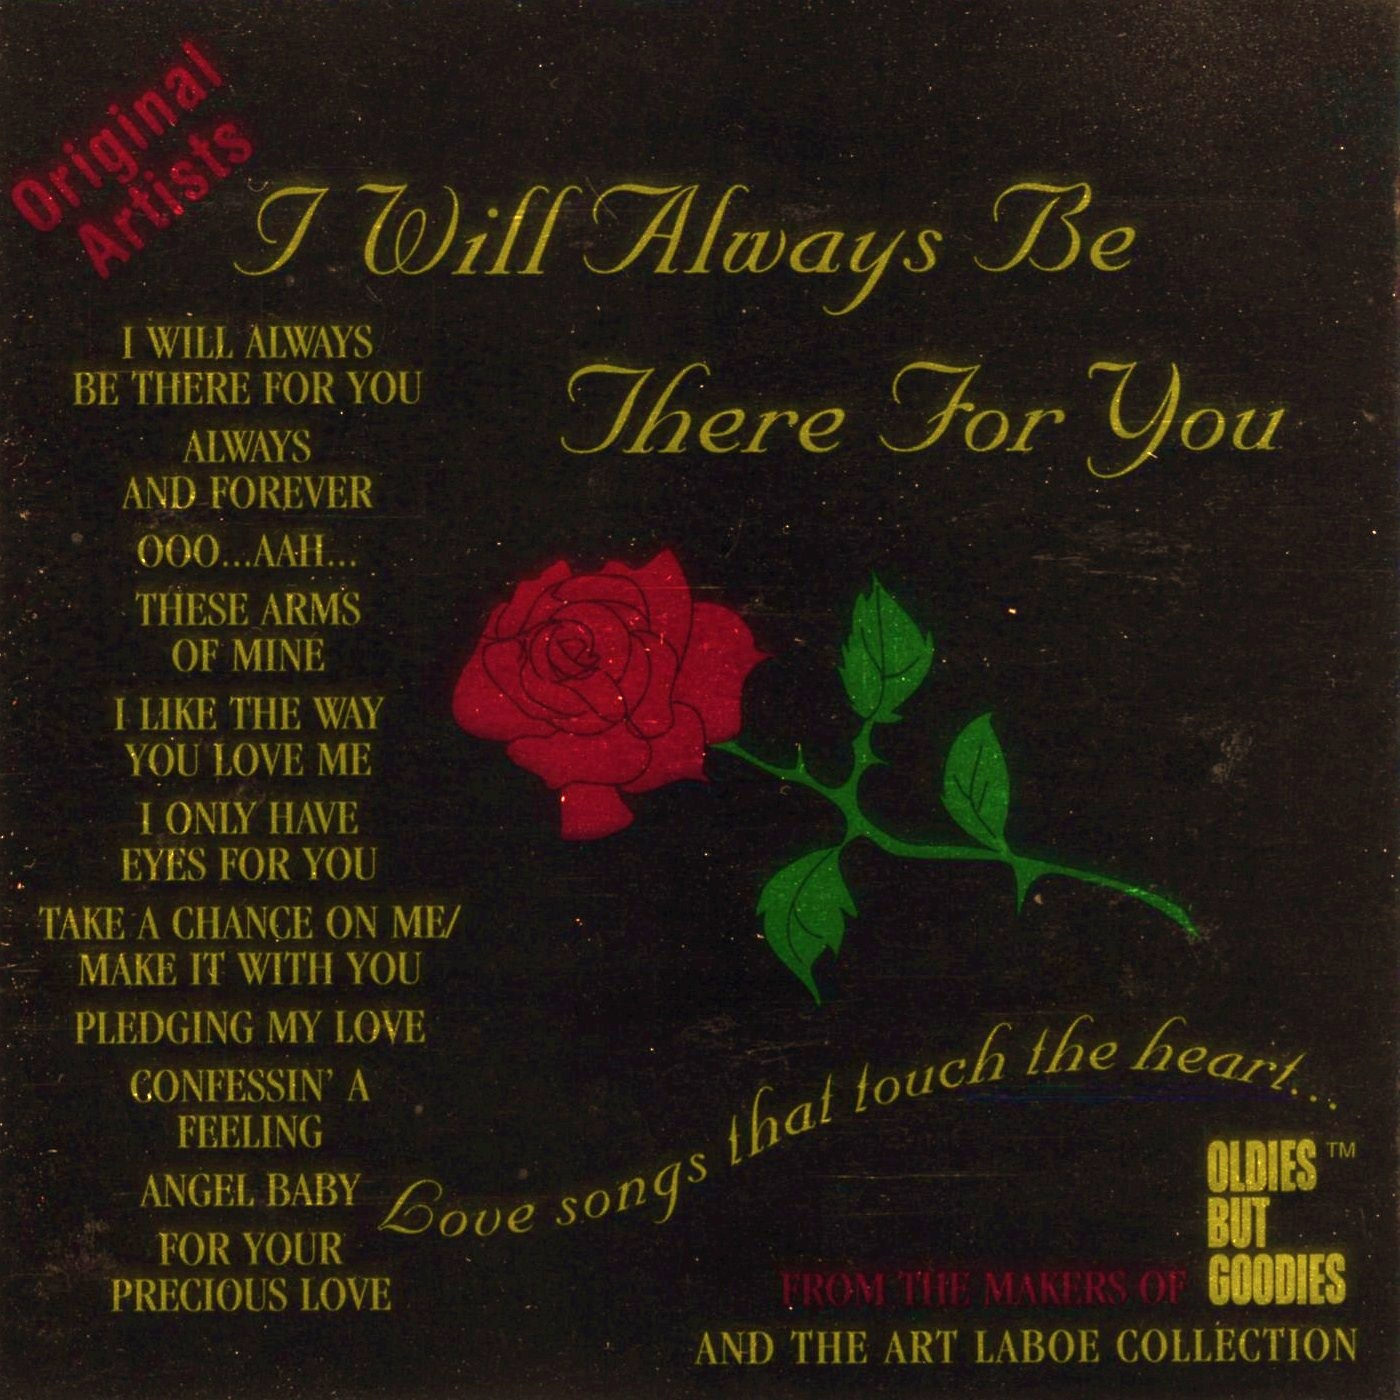 Quotes About Love Relationships: Doo Wop N Soul Oldies: I Will Always Be There For You